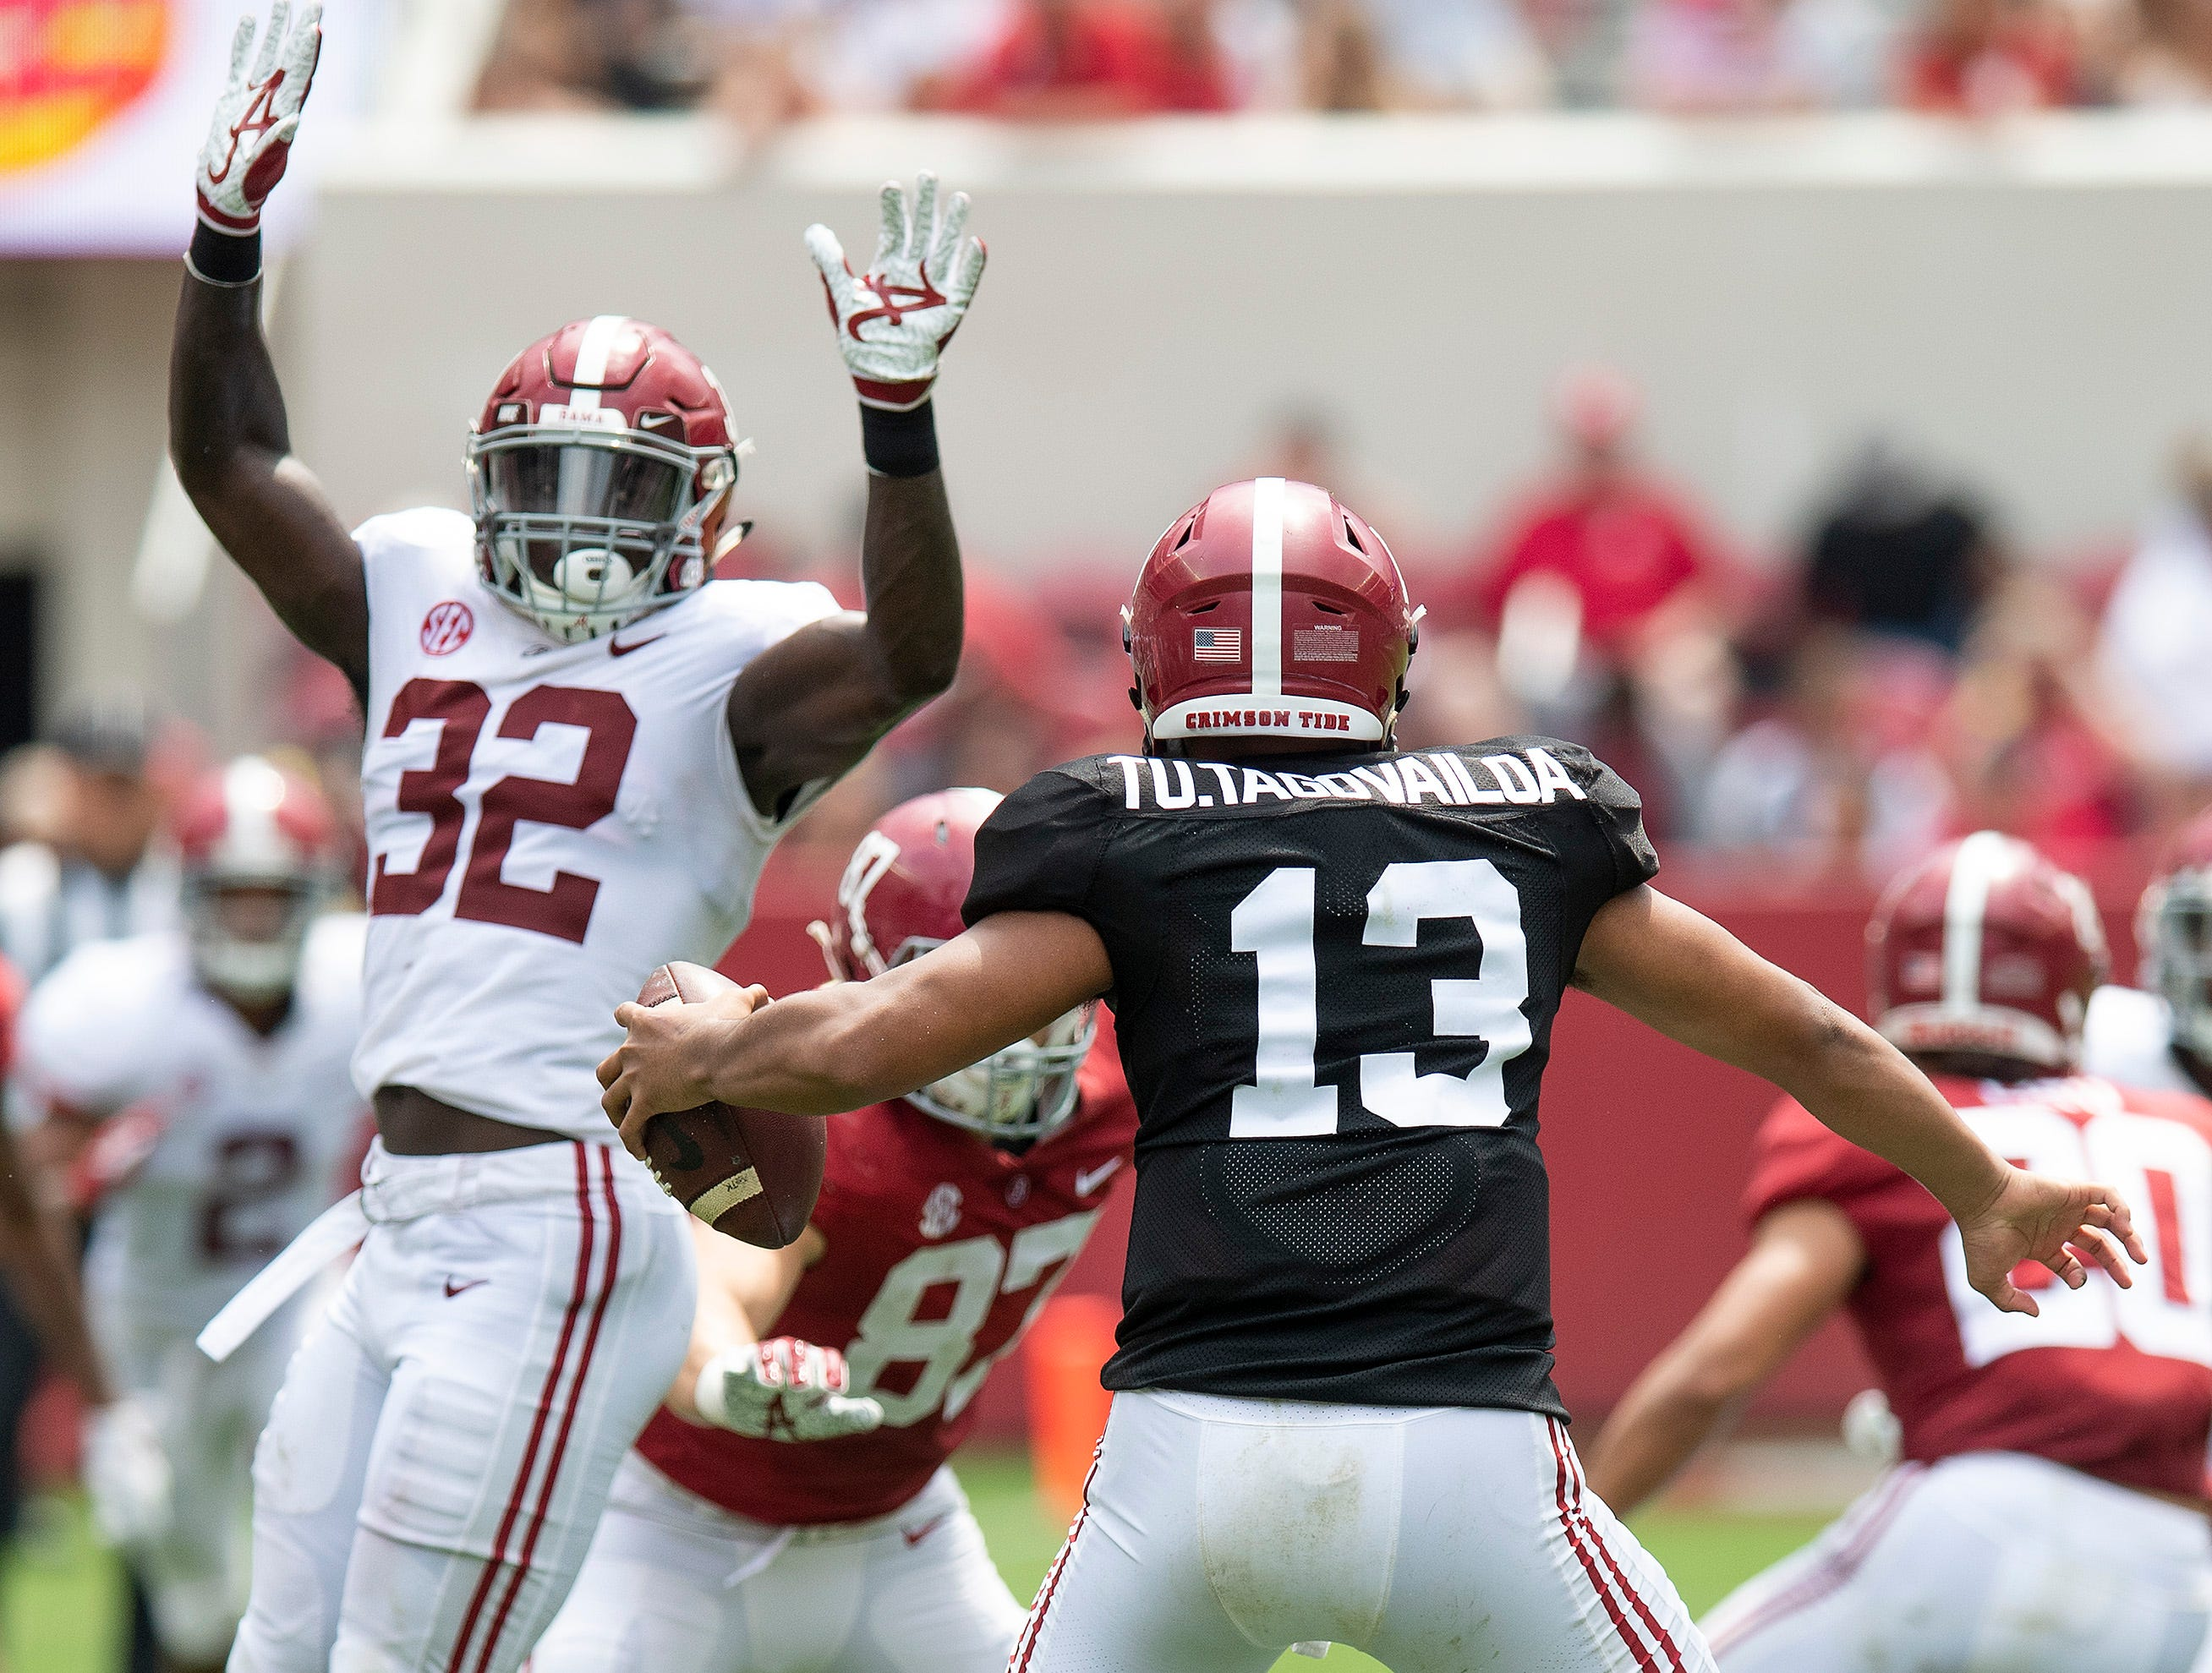 Quarterback Tua Tagovailoa (13) puts a move on linebacker Dylan Moses (32) during first half action in the Alabama A-Day spring football scrimmage game at Bryant Denny Stadium in Tuscaloosa, Ala., on Saturday April 13, 2019.